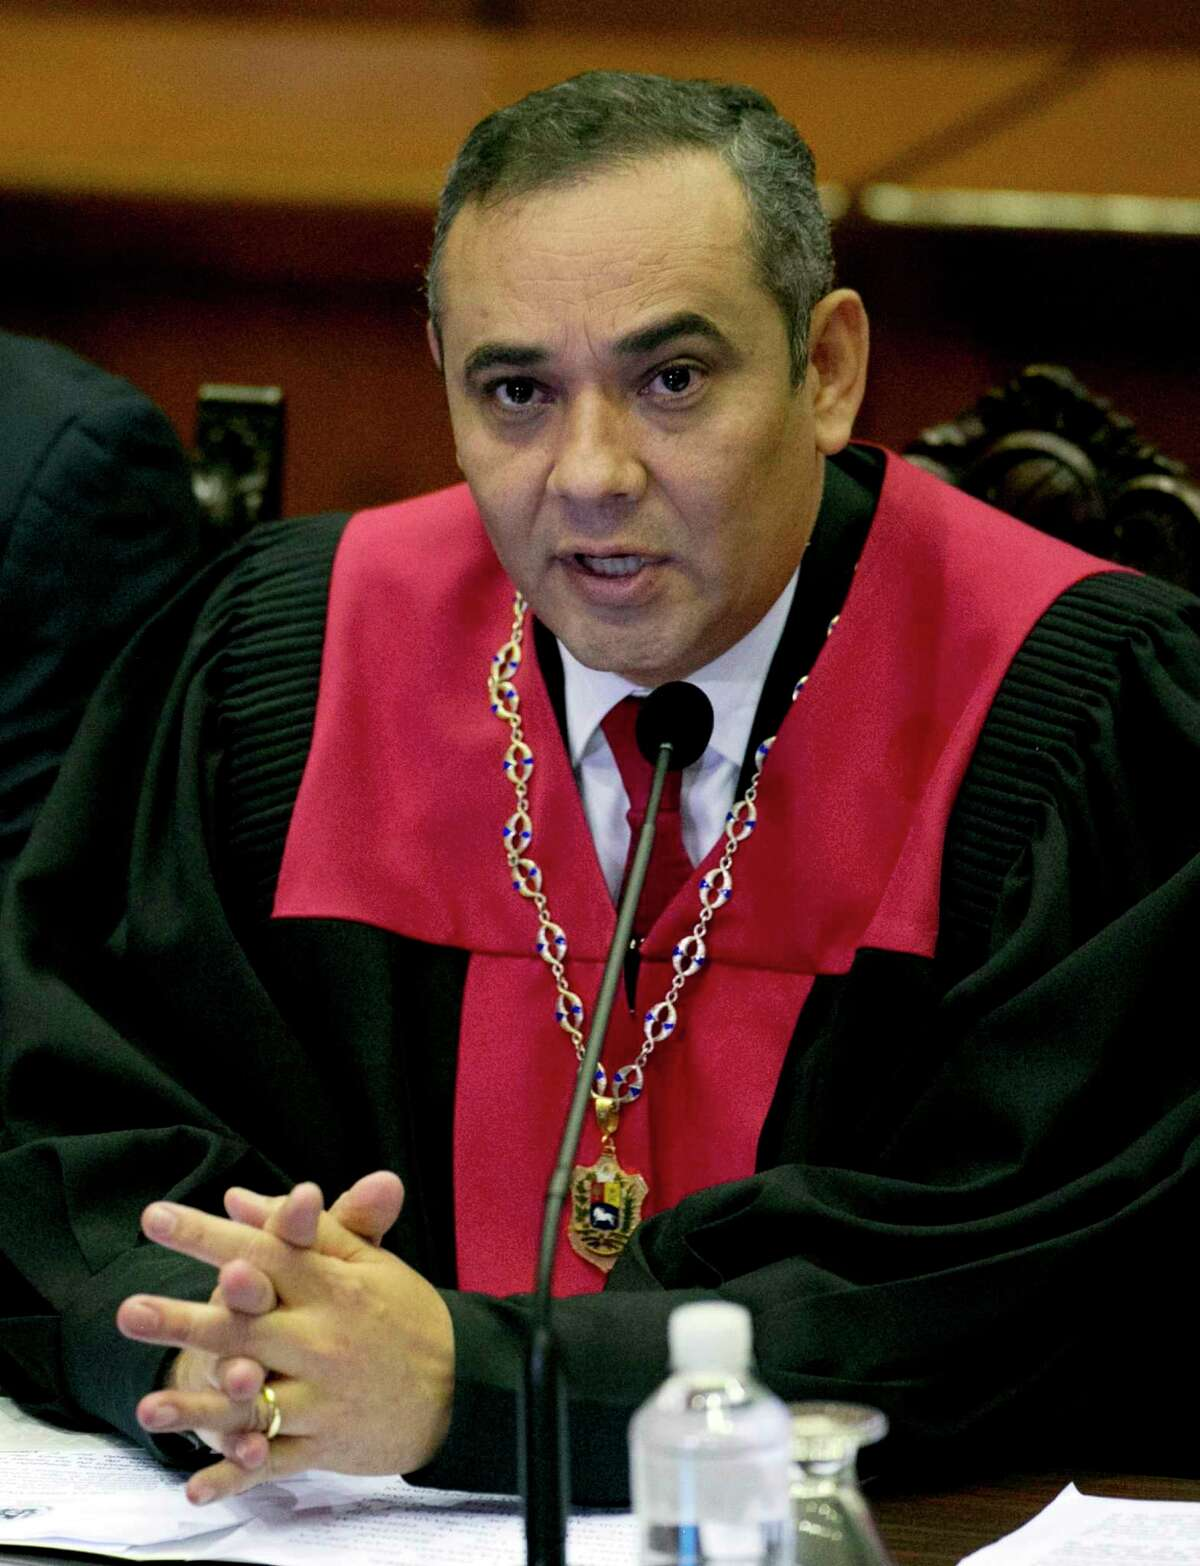 Venezuela's Supreme Court President Maikel Moreno speaks during a meeting with Ambassadors from different countries and Diplomatics at the Supreme Court in Caracas, Venezuela, Saturday, April 1, 2017. Venezuela's president and Supreme Court backed down Saturday from an audacious move to strip congress of its legislative powers that had sparked widespread charges that the South American country was no longer a democracy. (AP Photo/Ariana Cubillos)